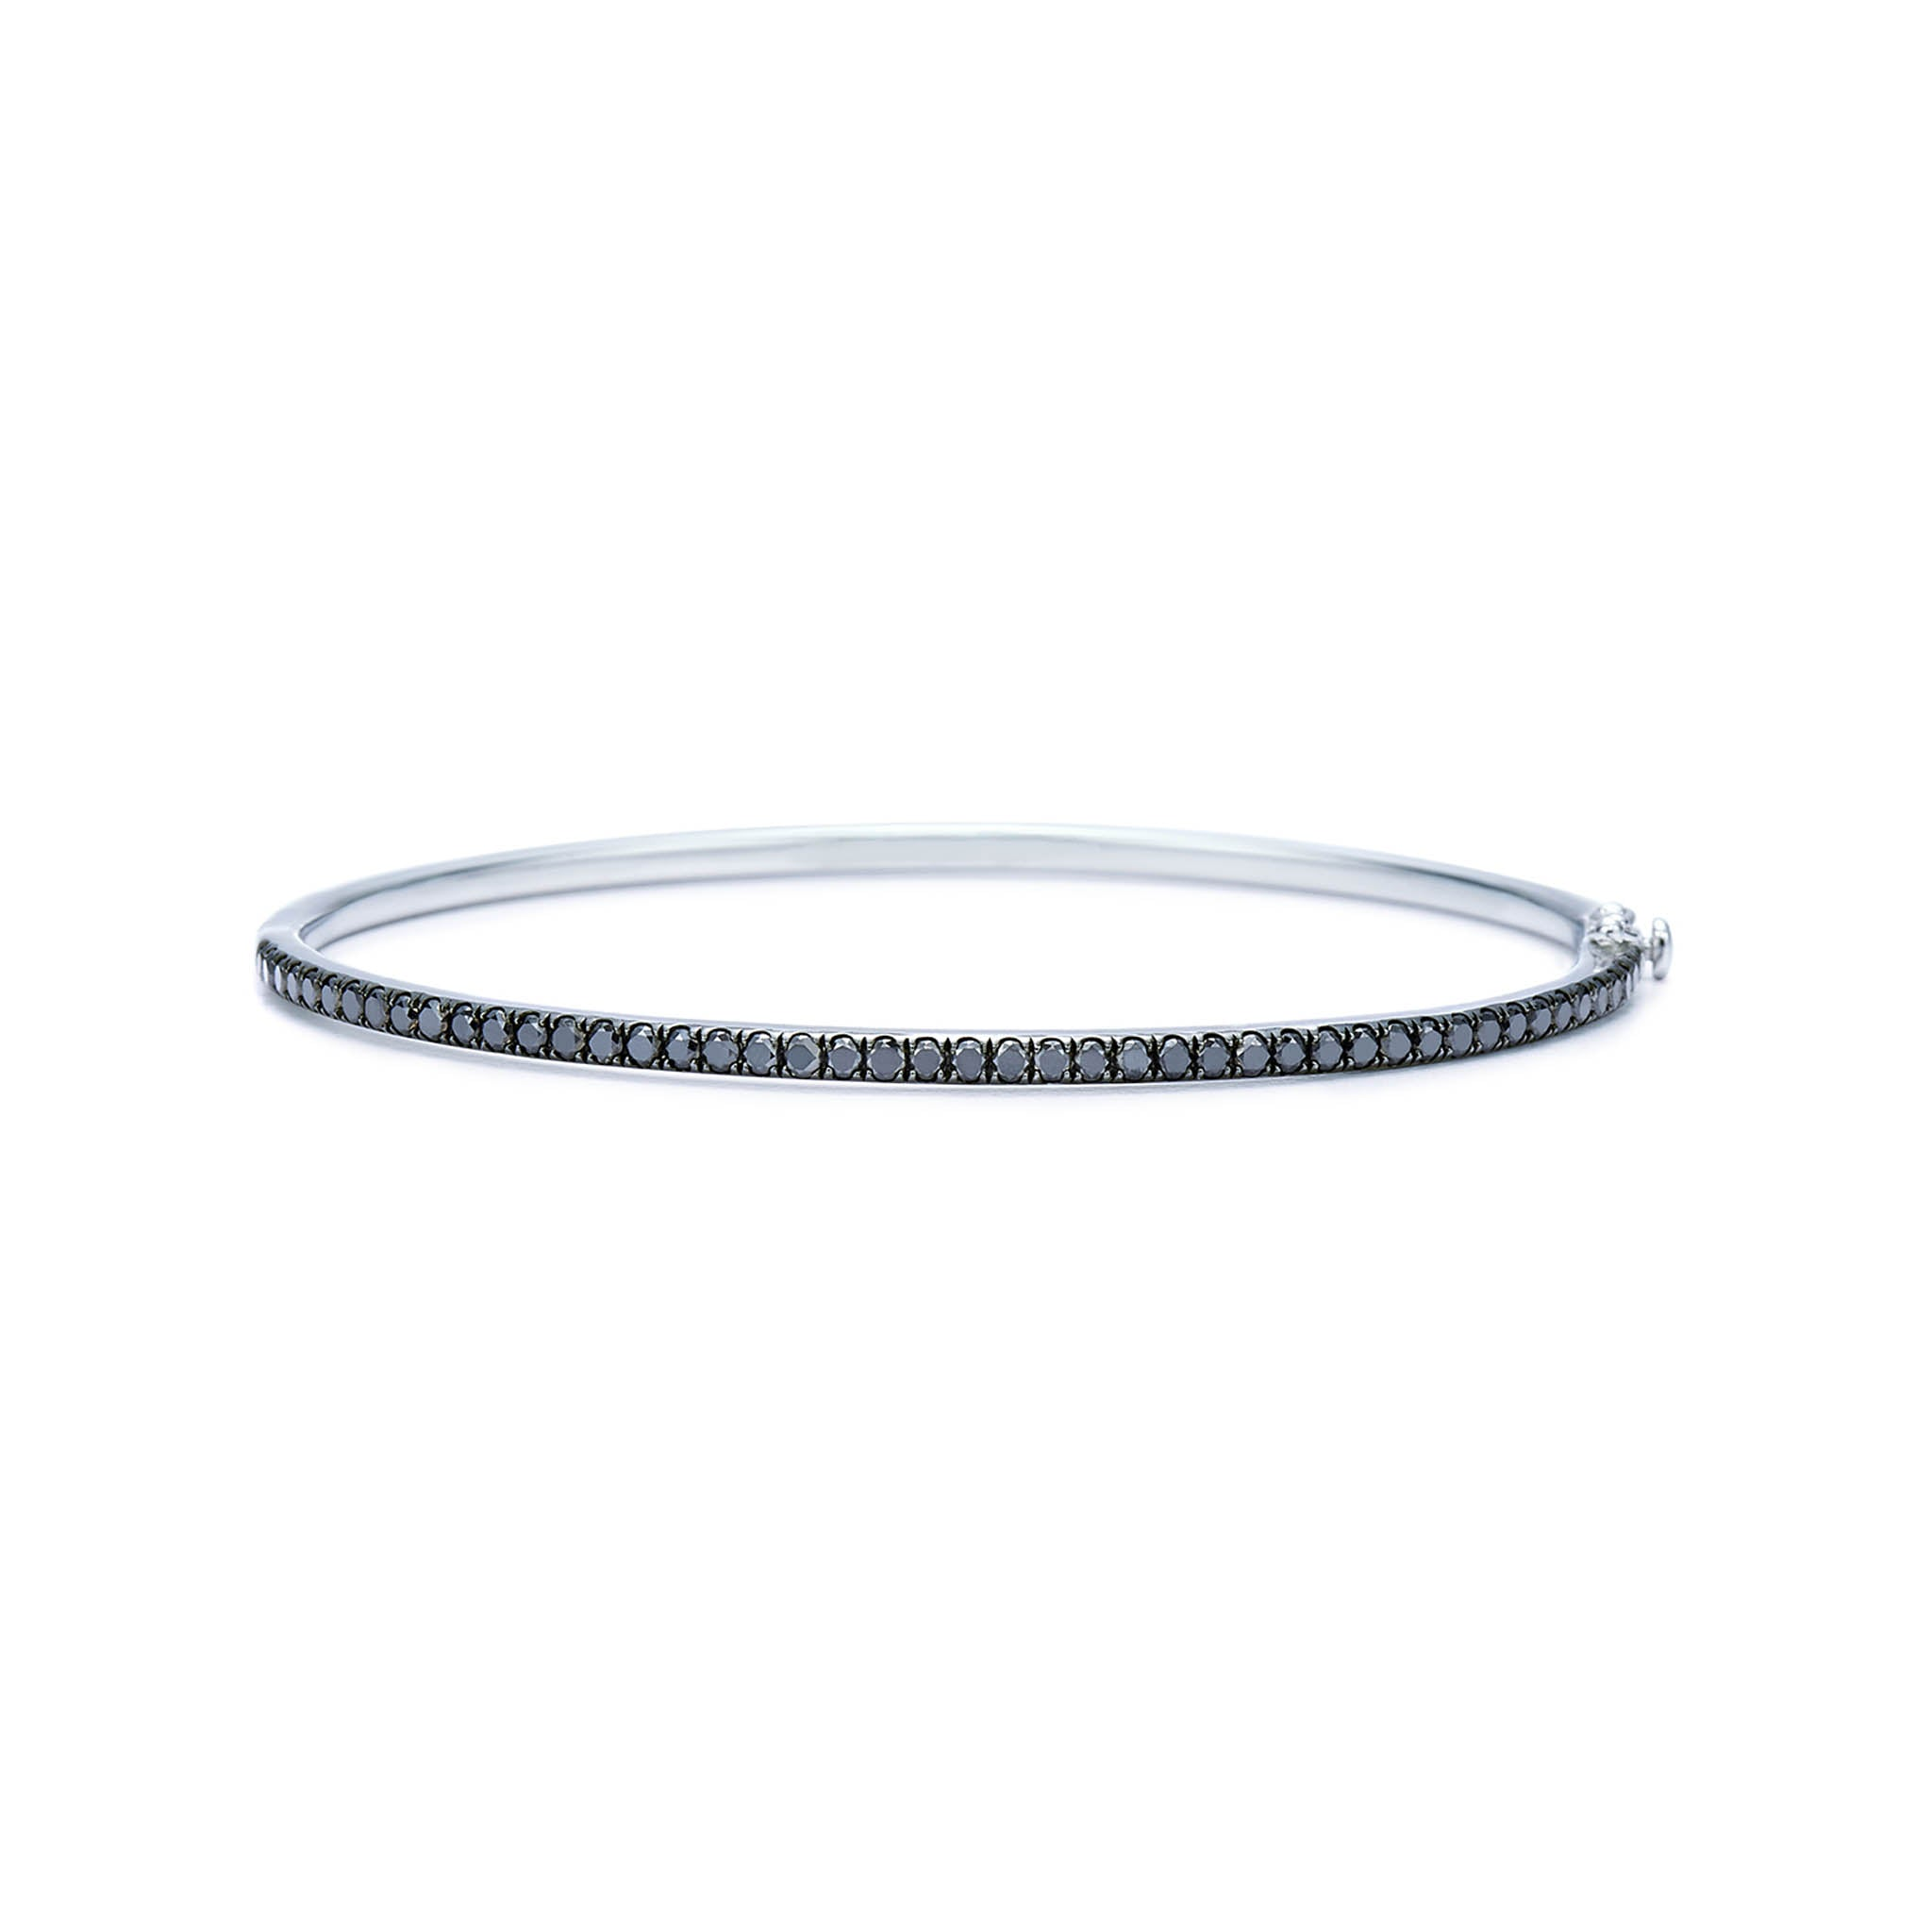 18k White Gold and Black Diamond Bangle